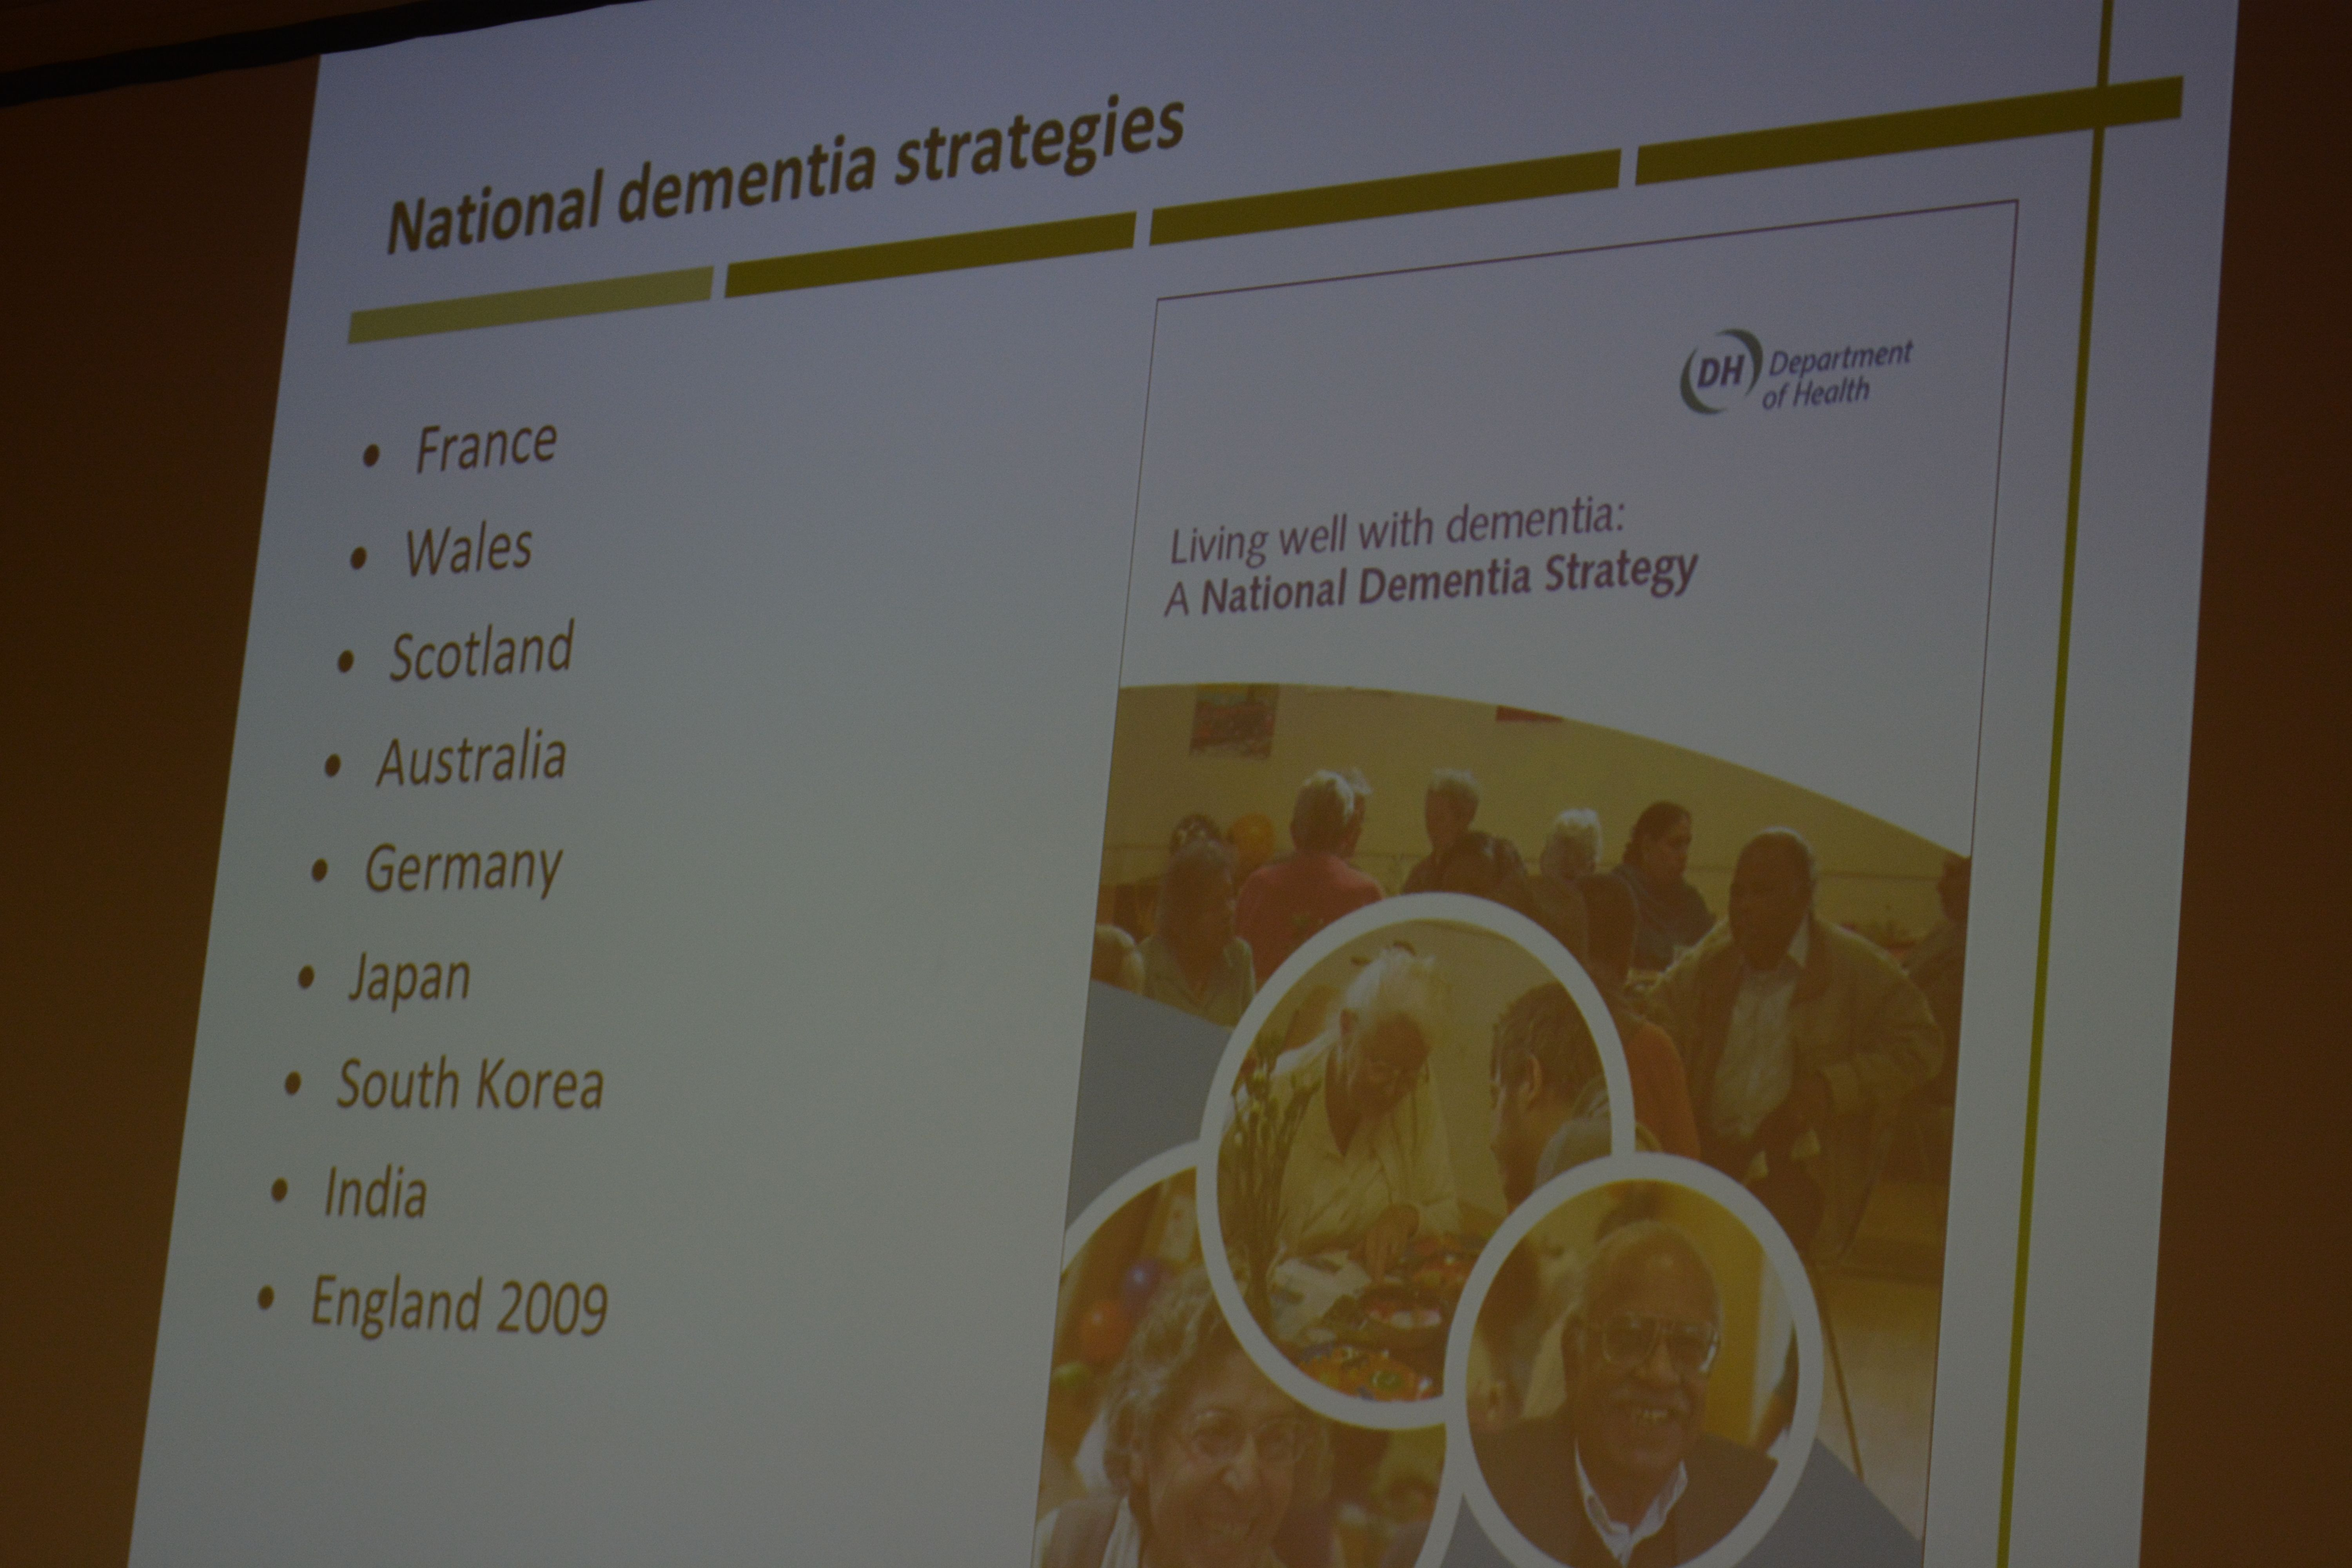 SUBE4 National dementia strategy